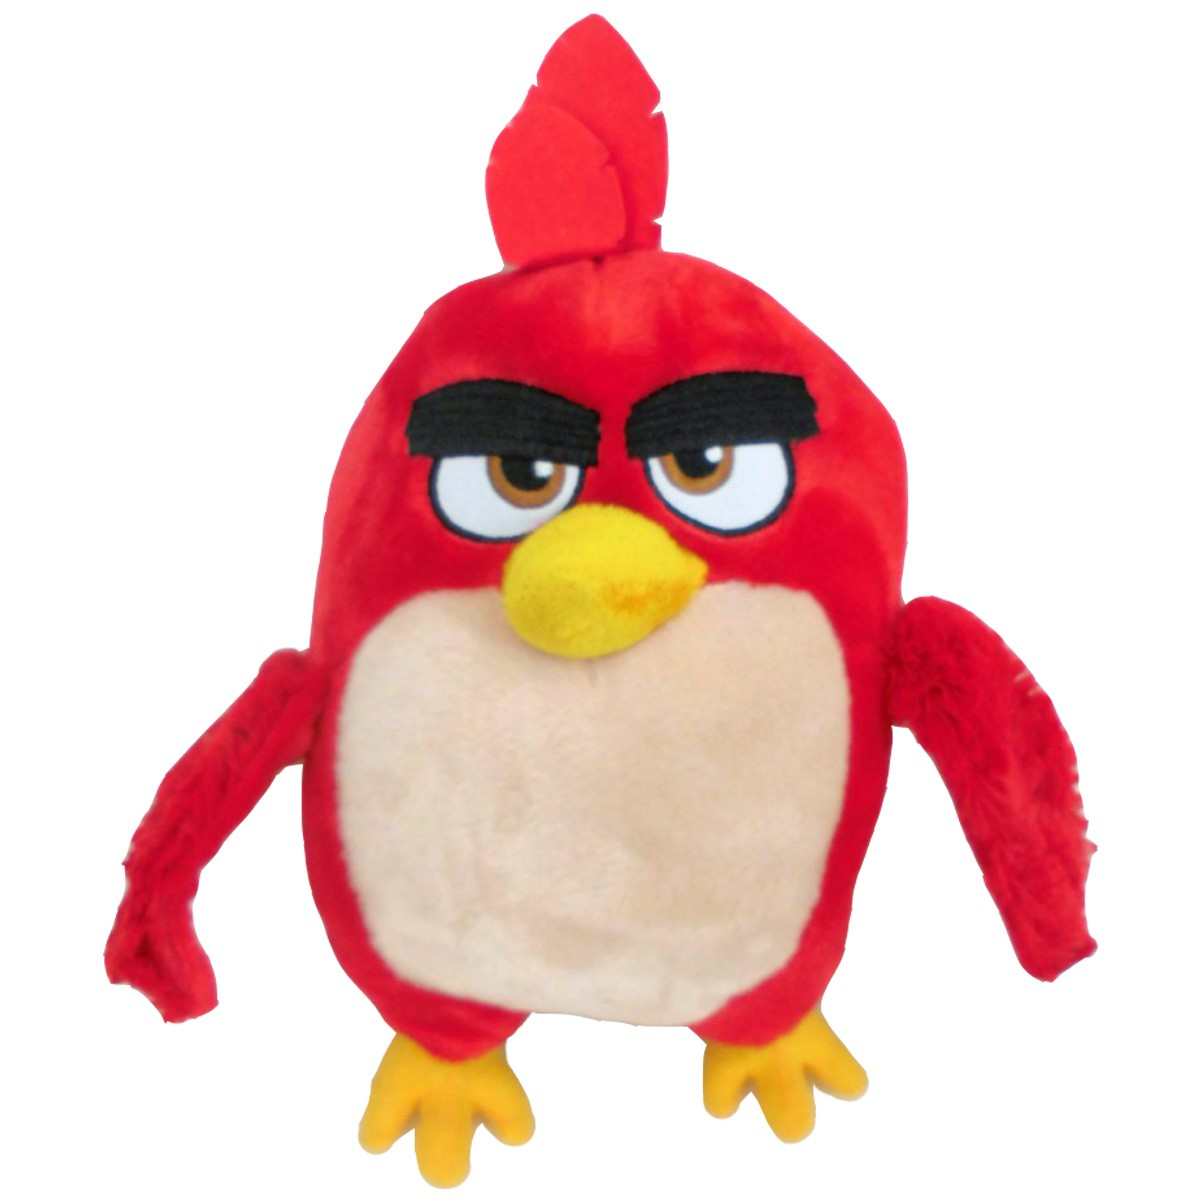 angry birds red pl schfigur pl sch kuscheltier puppe stofftier teddy 34cm. Black Bedroom Furniture Sets. Home Design Ideas